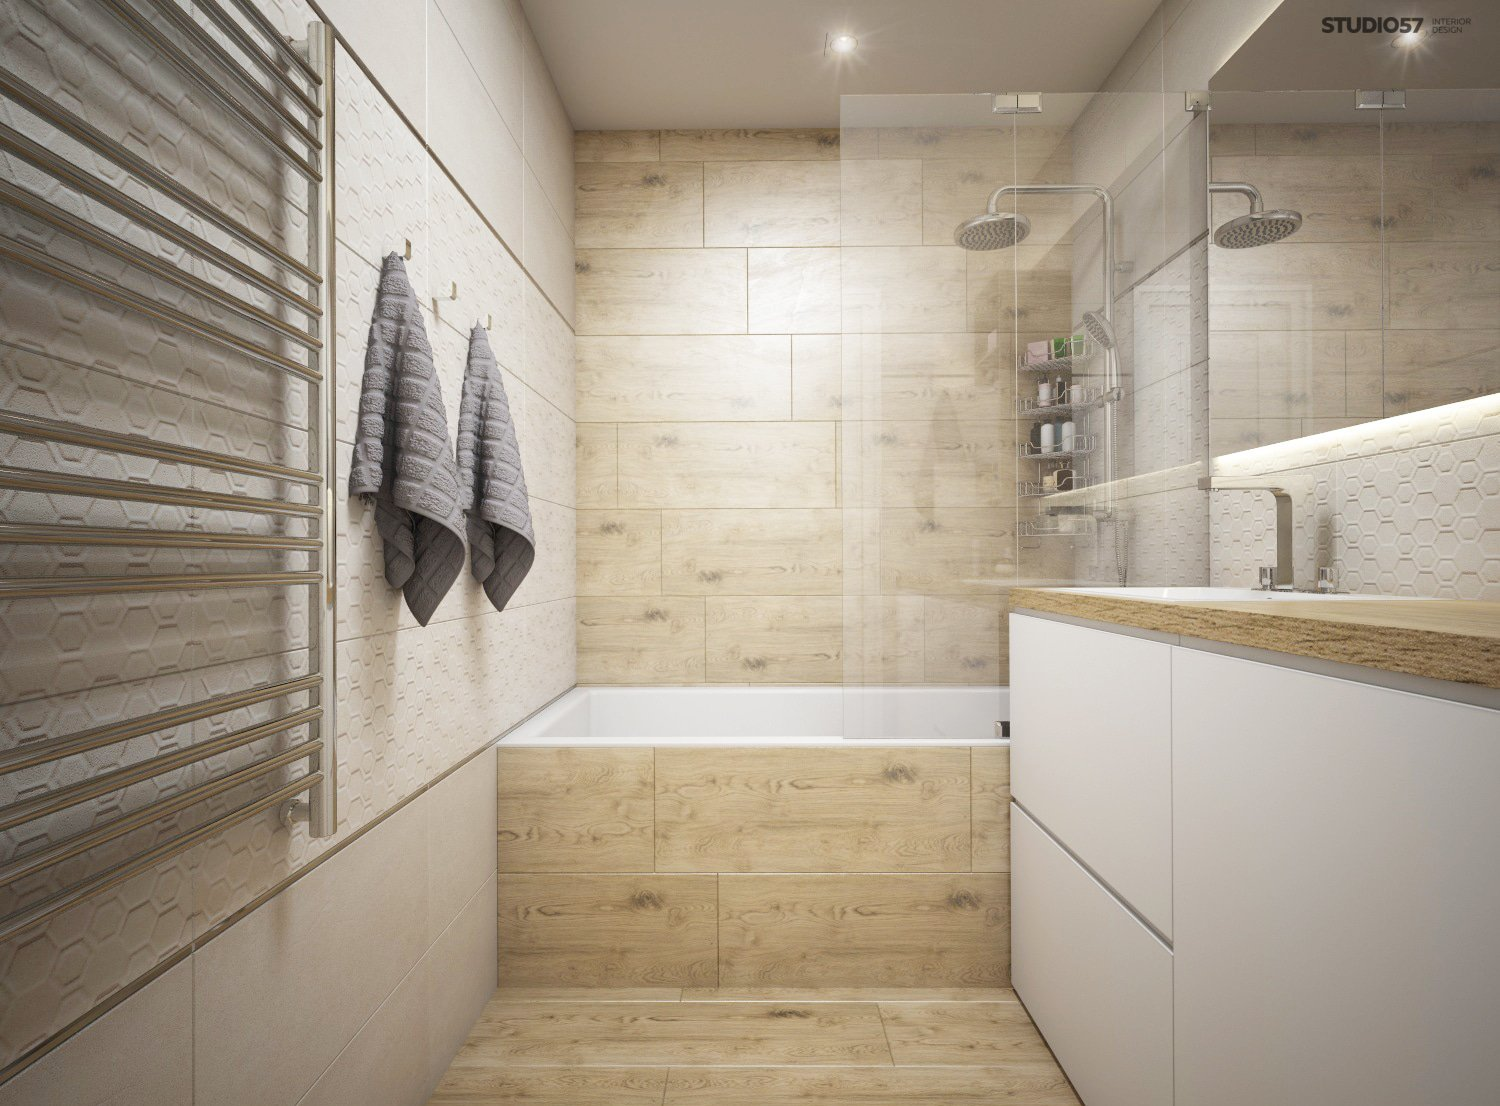 Bathroom in a modern classic style image